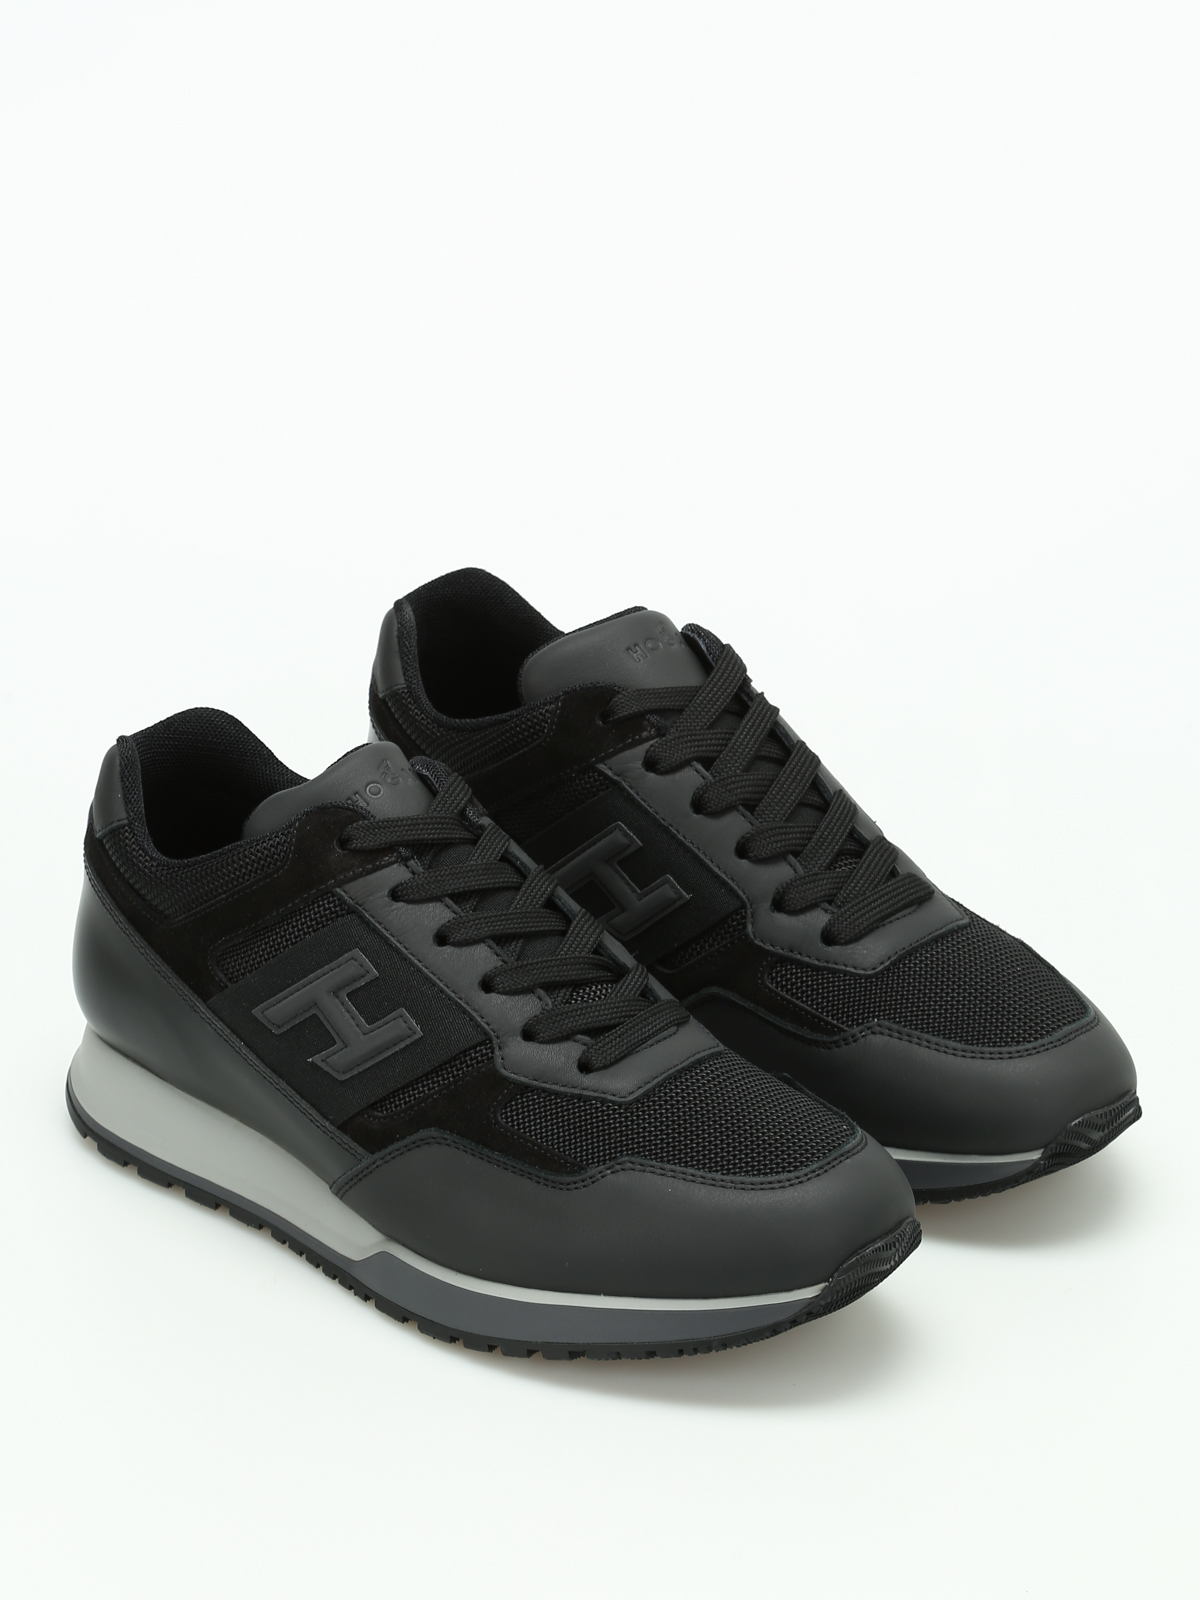 Hogan H321 Leather And Mesh Sneakers Trainers